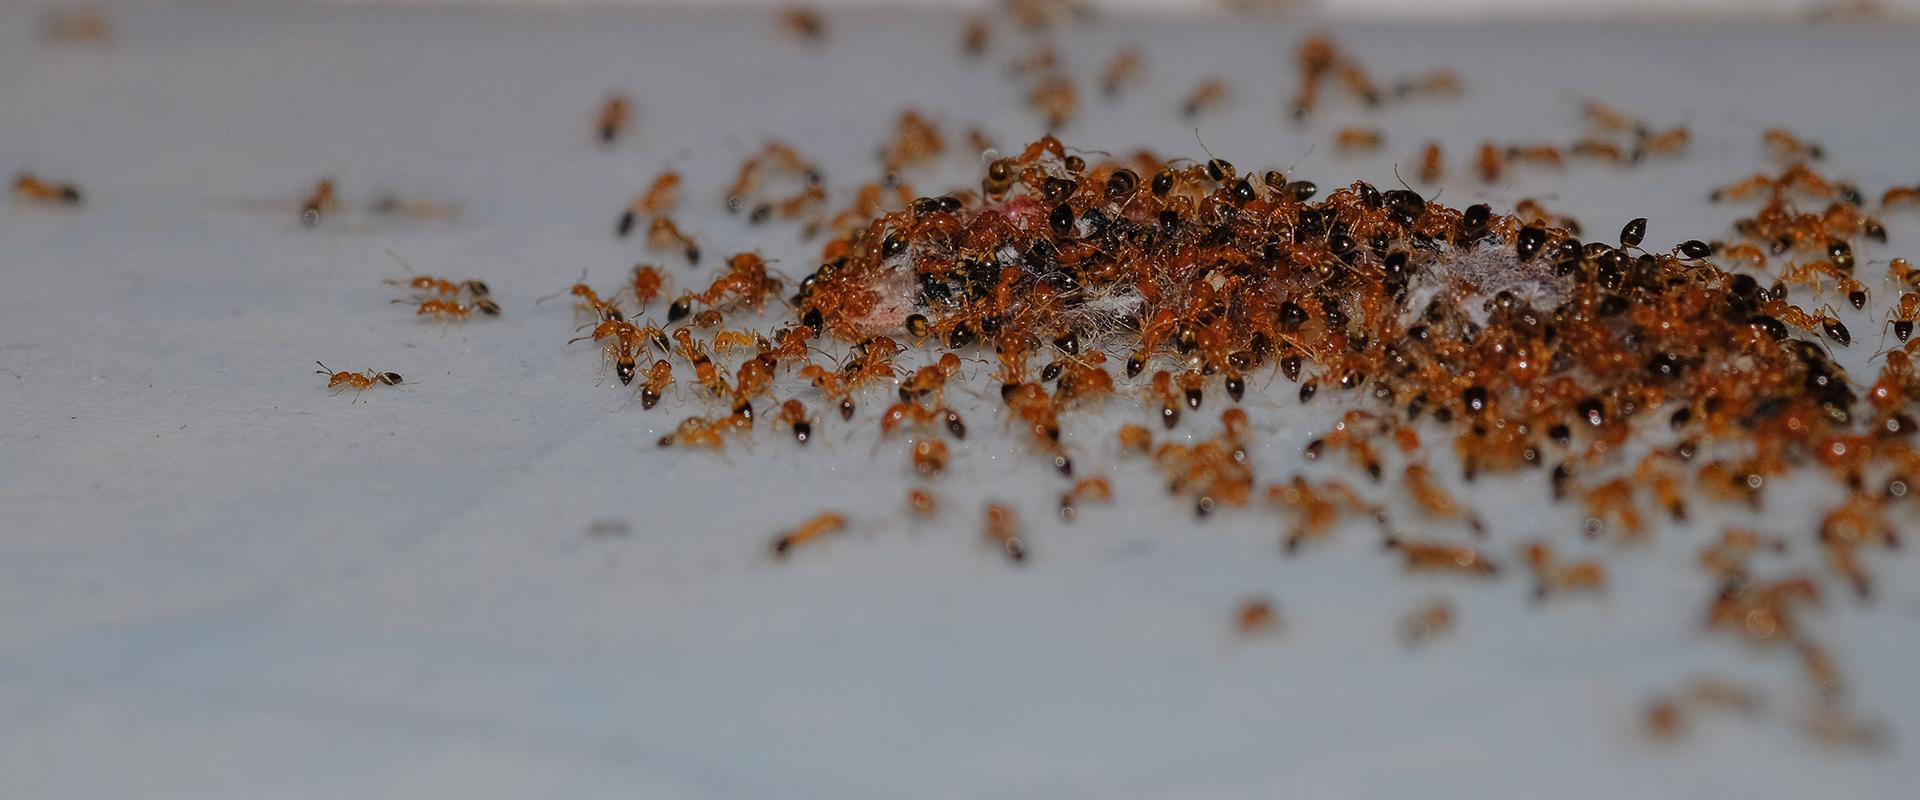 many argentine ants on a bathroom floor